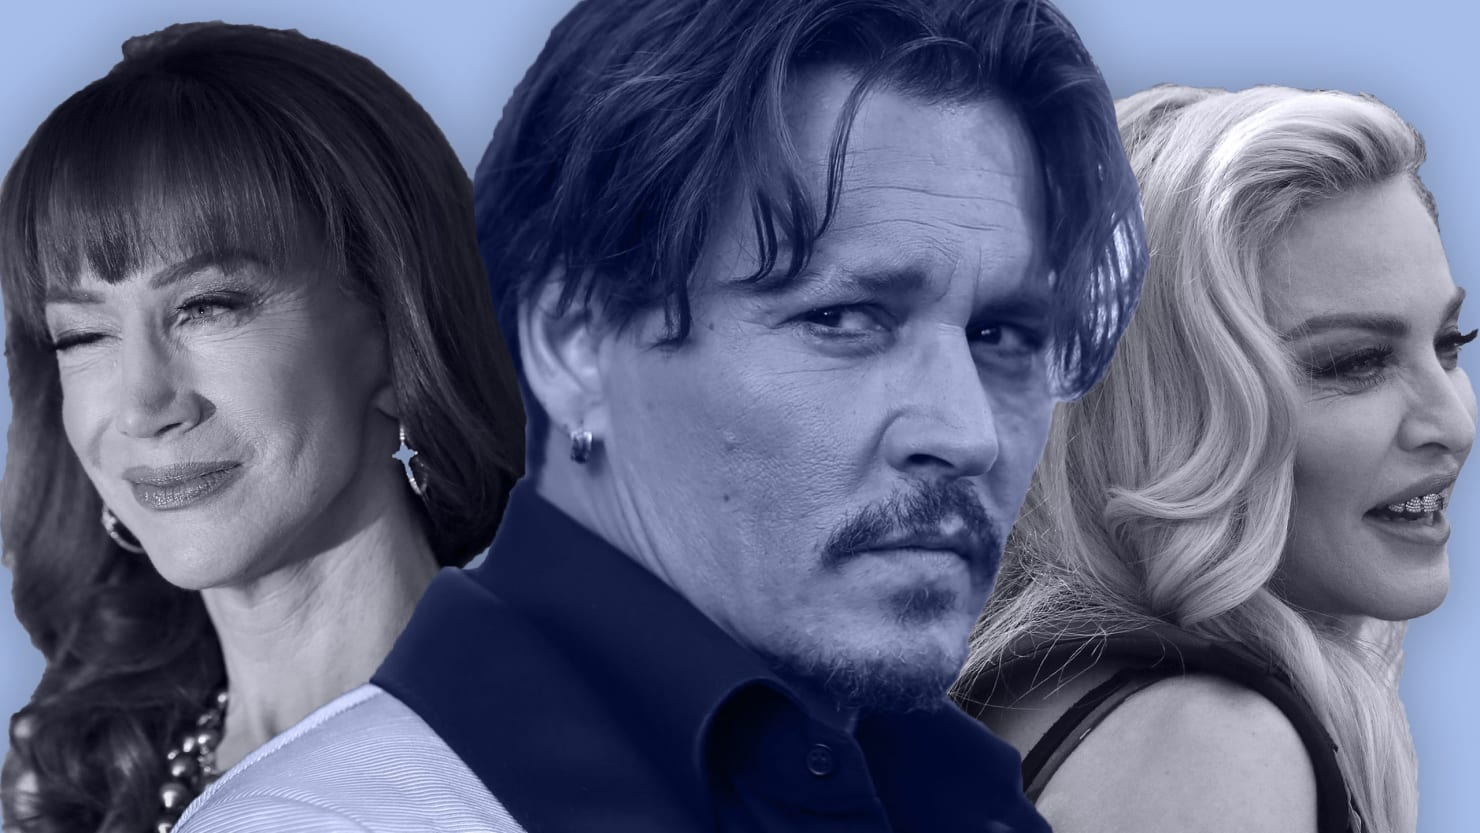 How Hollywood Celebs Like Johnny Depp Are Hurting the